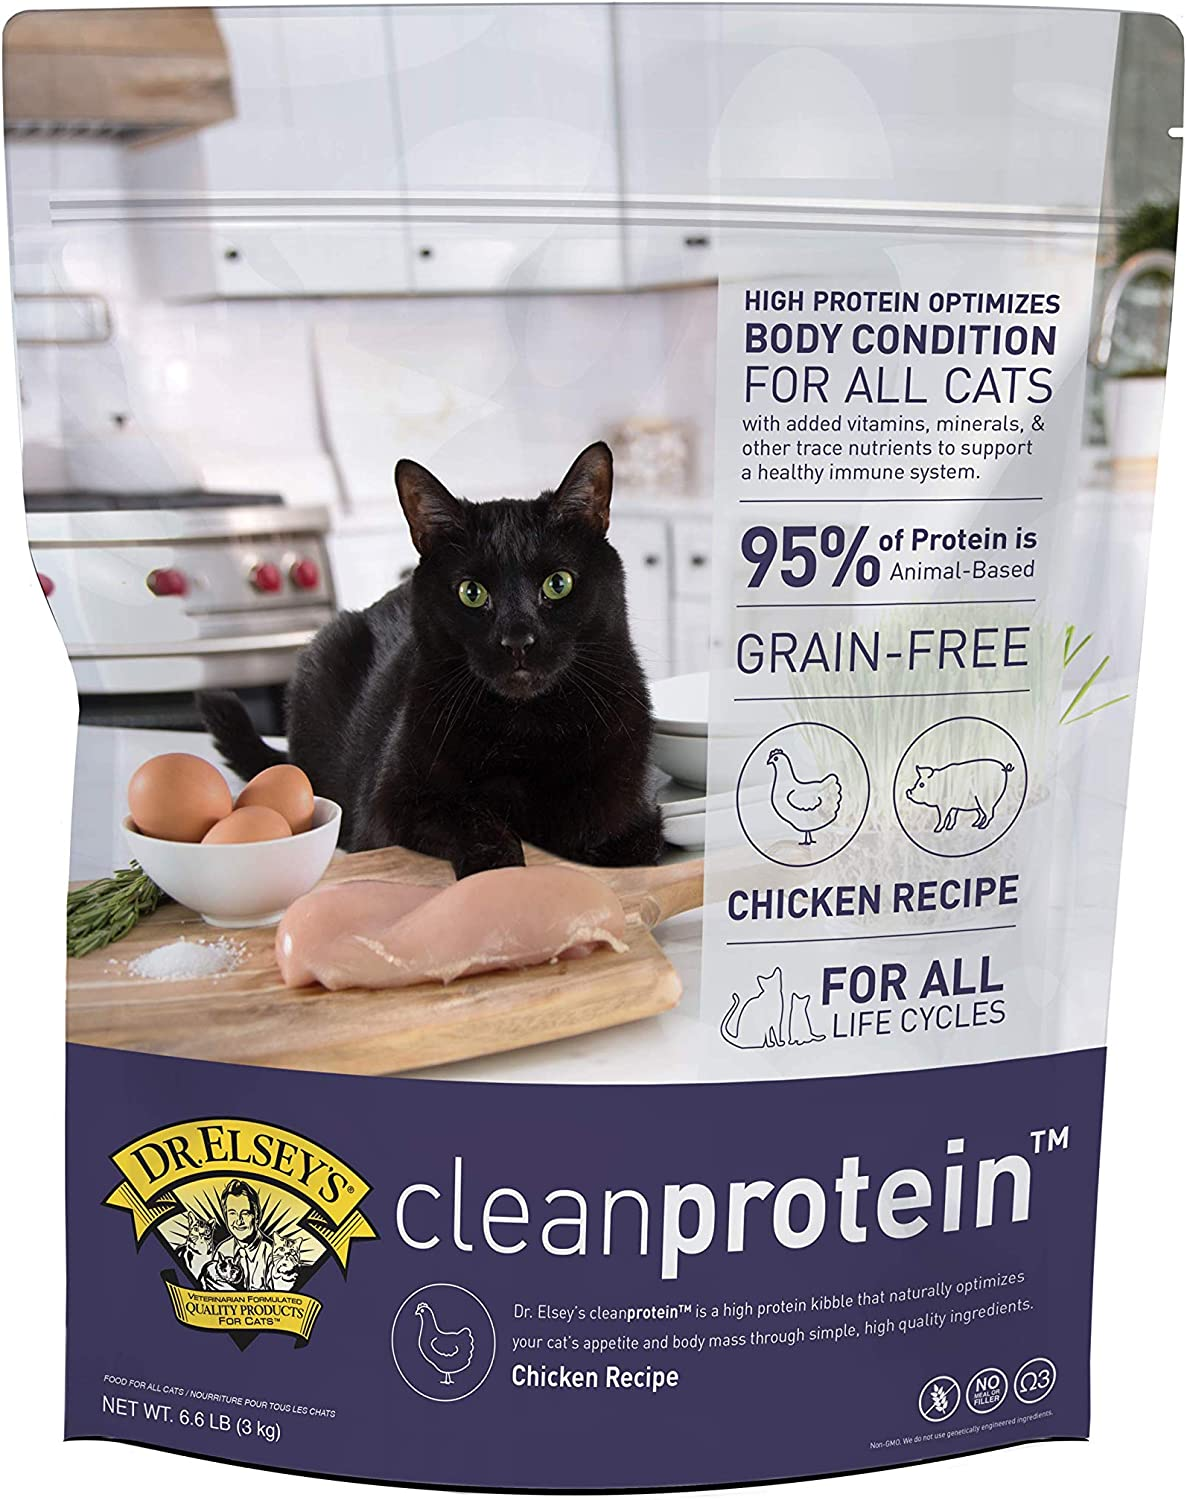 2. Dr. Elsey's Cleanprotein Formula Dry Cat Food